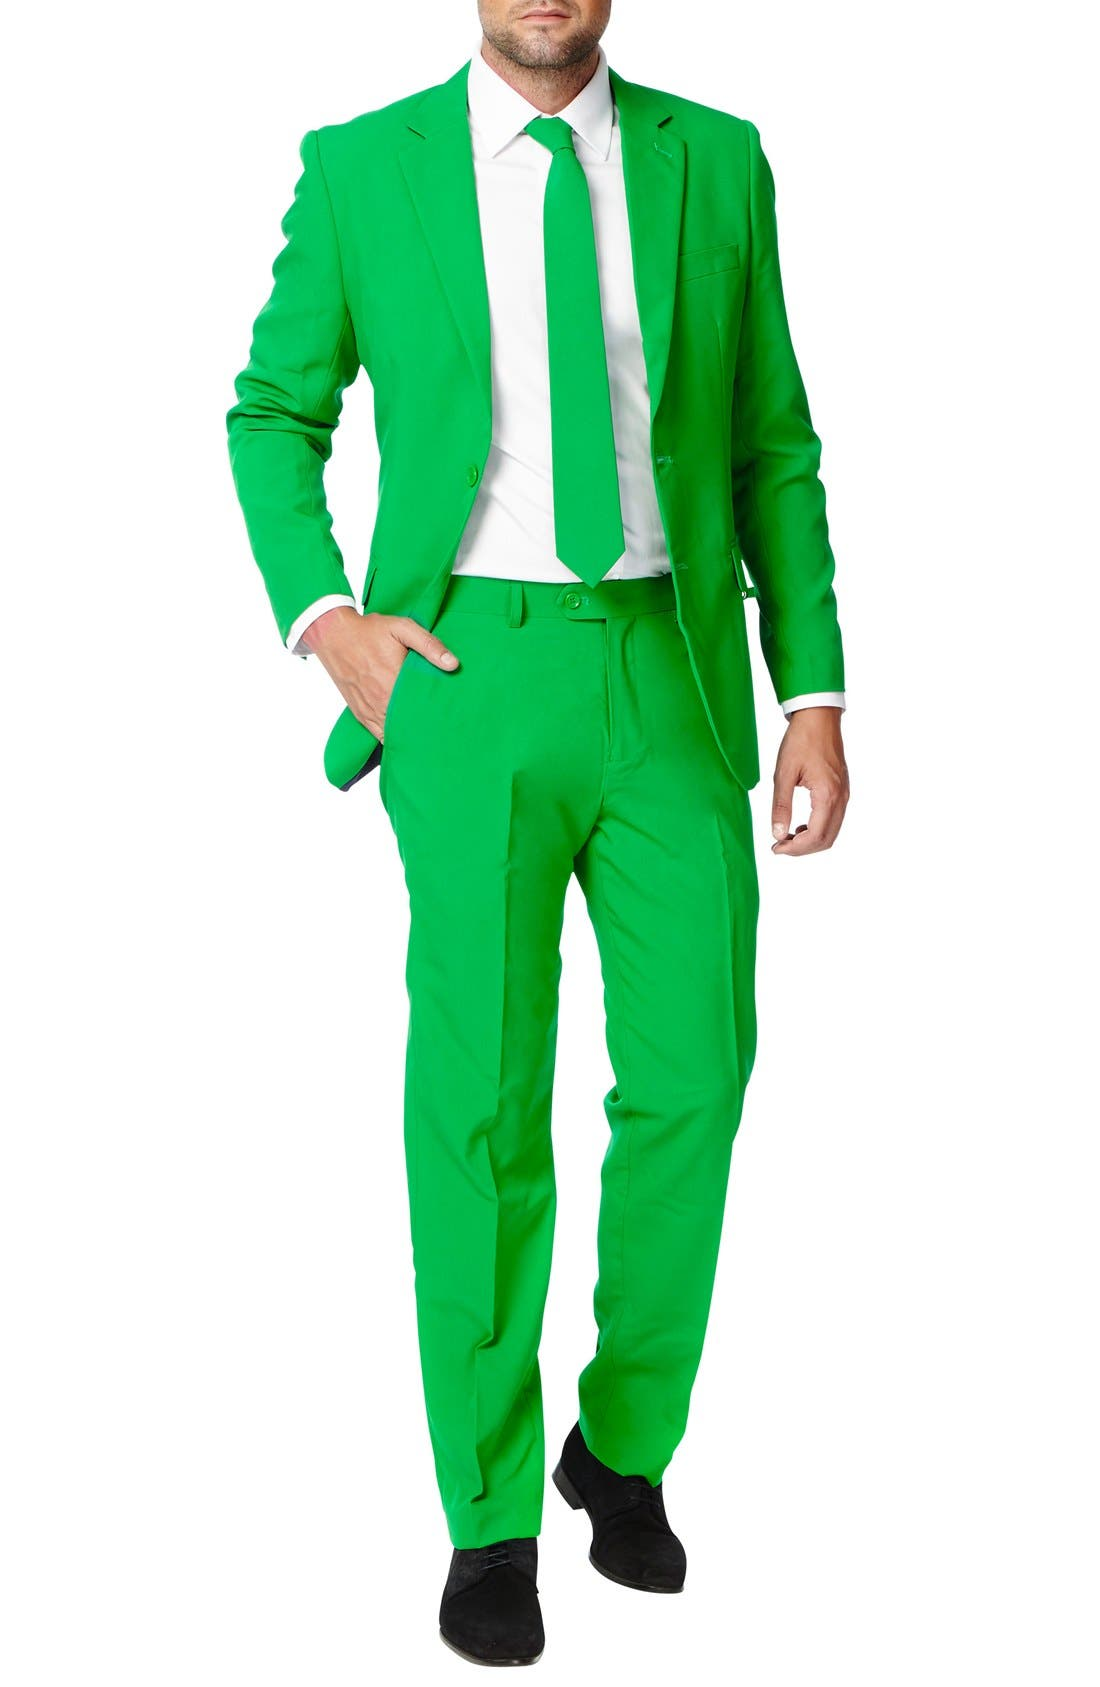 OppoSuits 'Evergreen' Trim Fit Suit with Tie